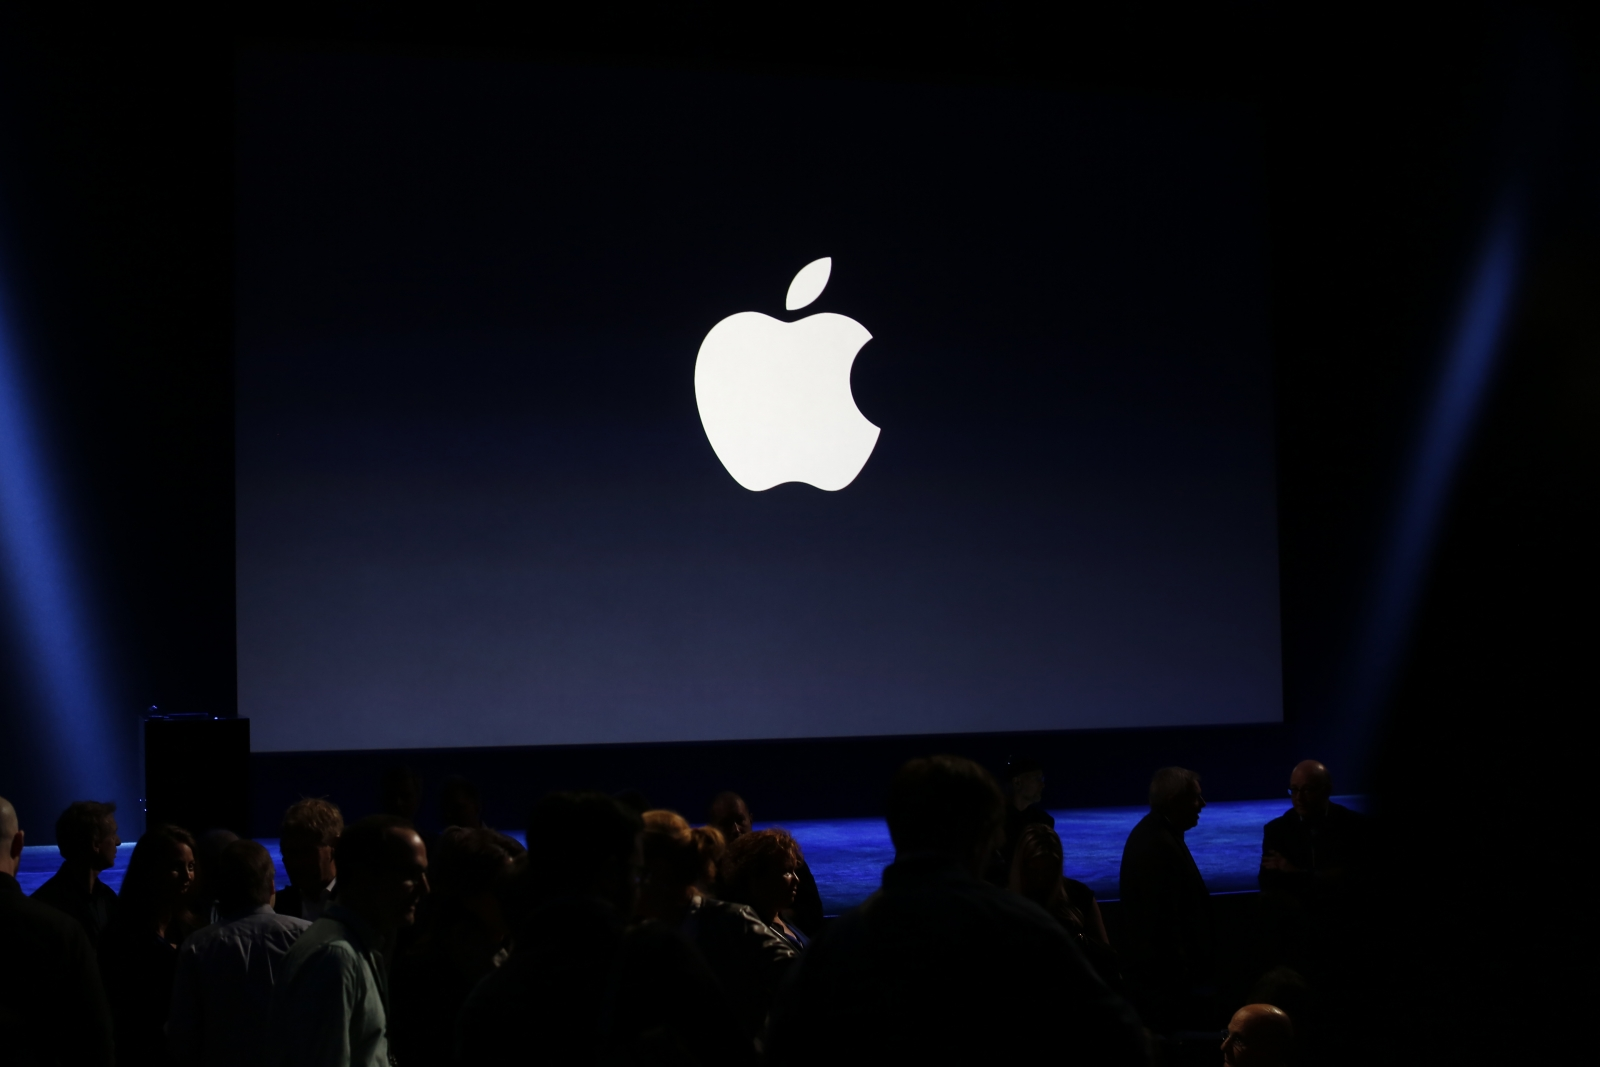 Apple is world's biggest tech company